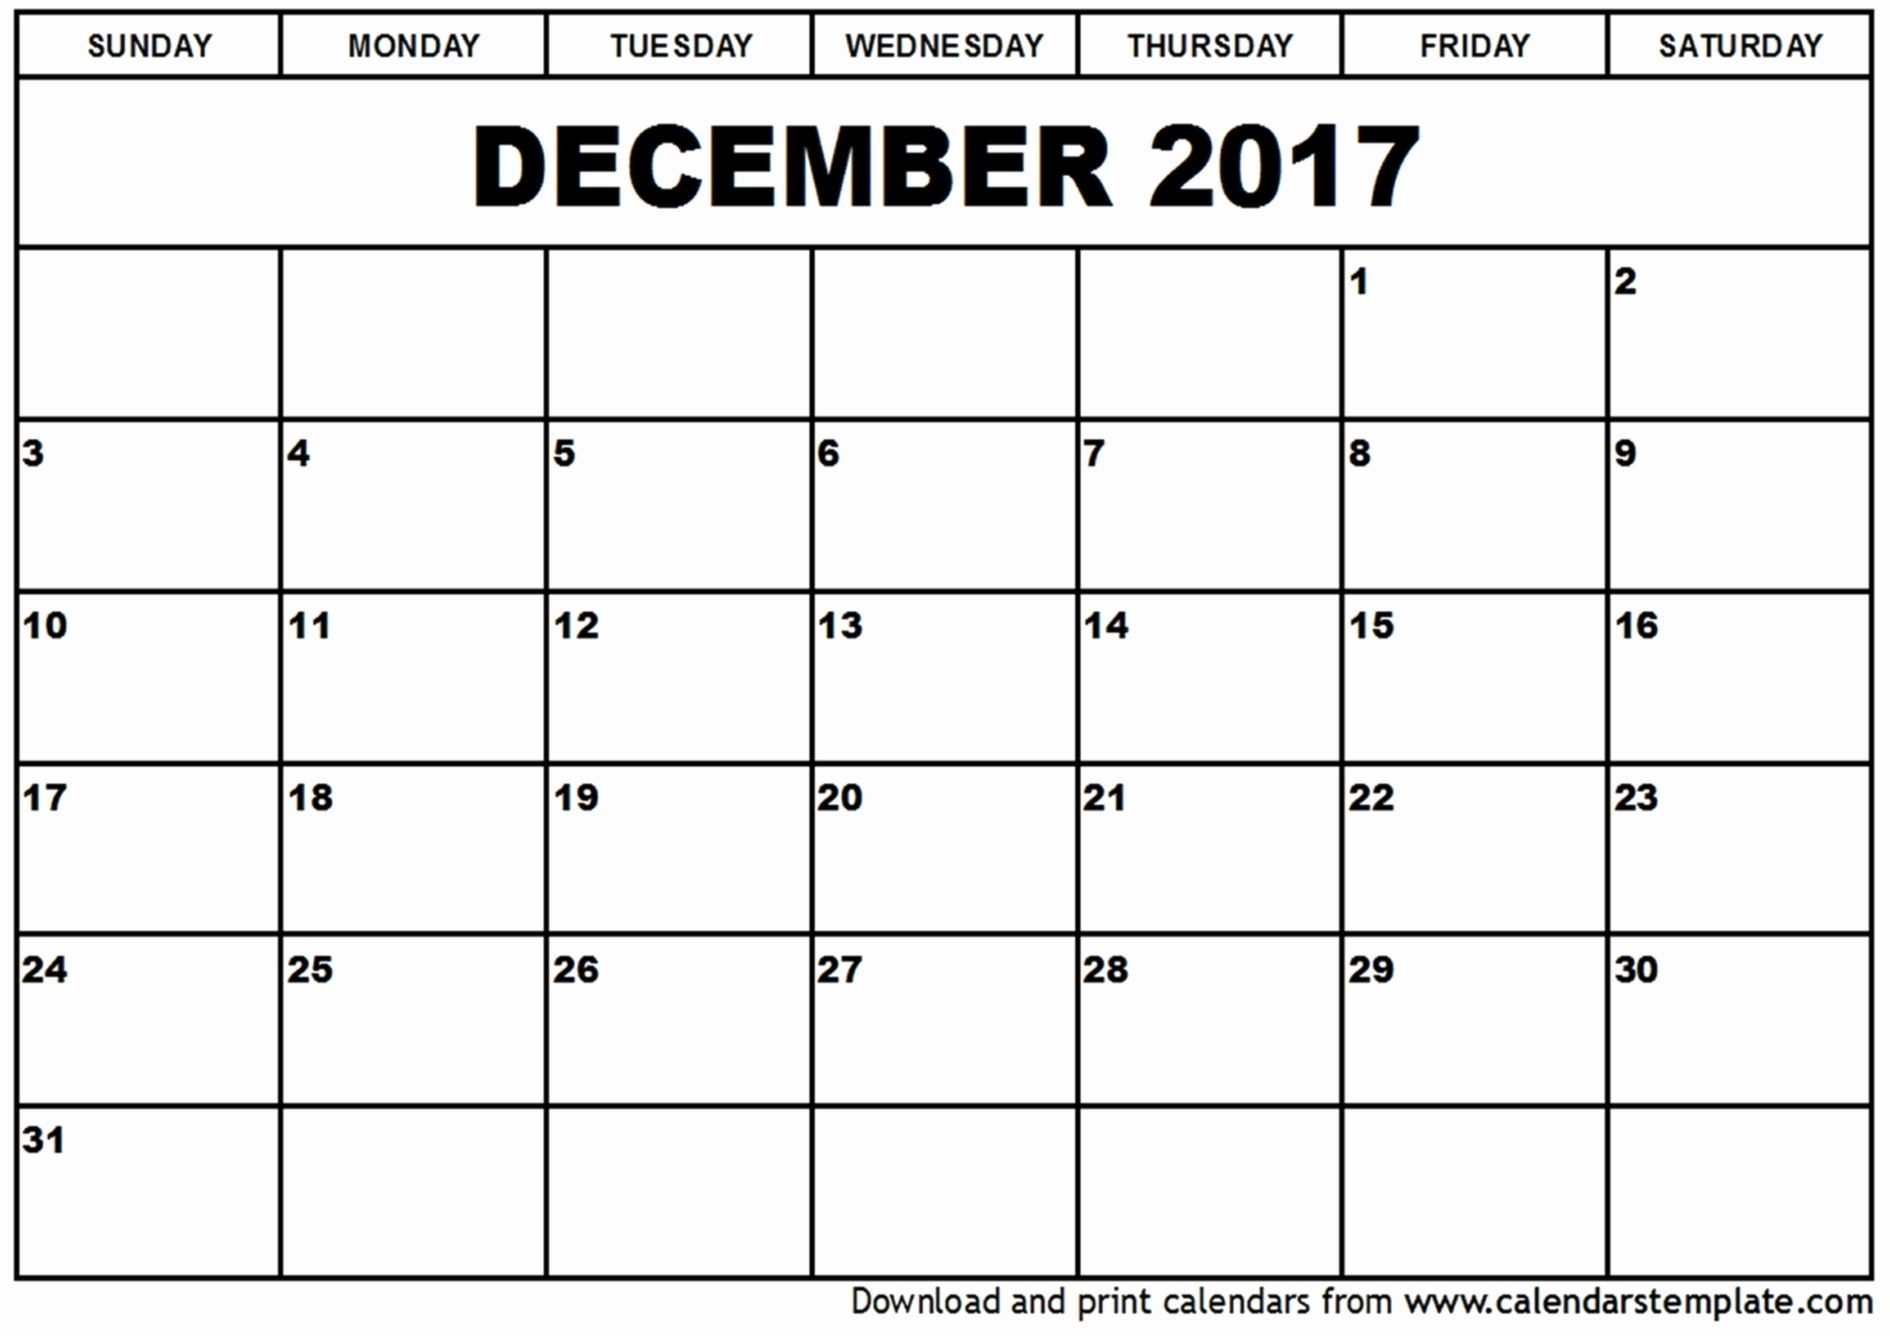 printable calendar i can type on in 2020 | calendar